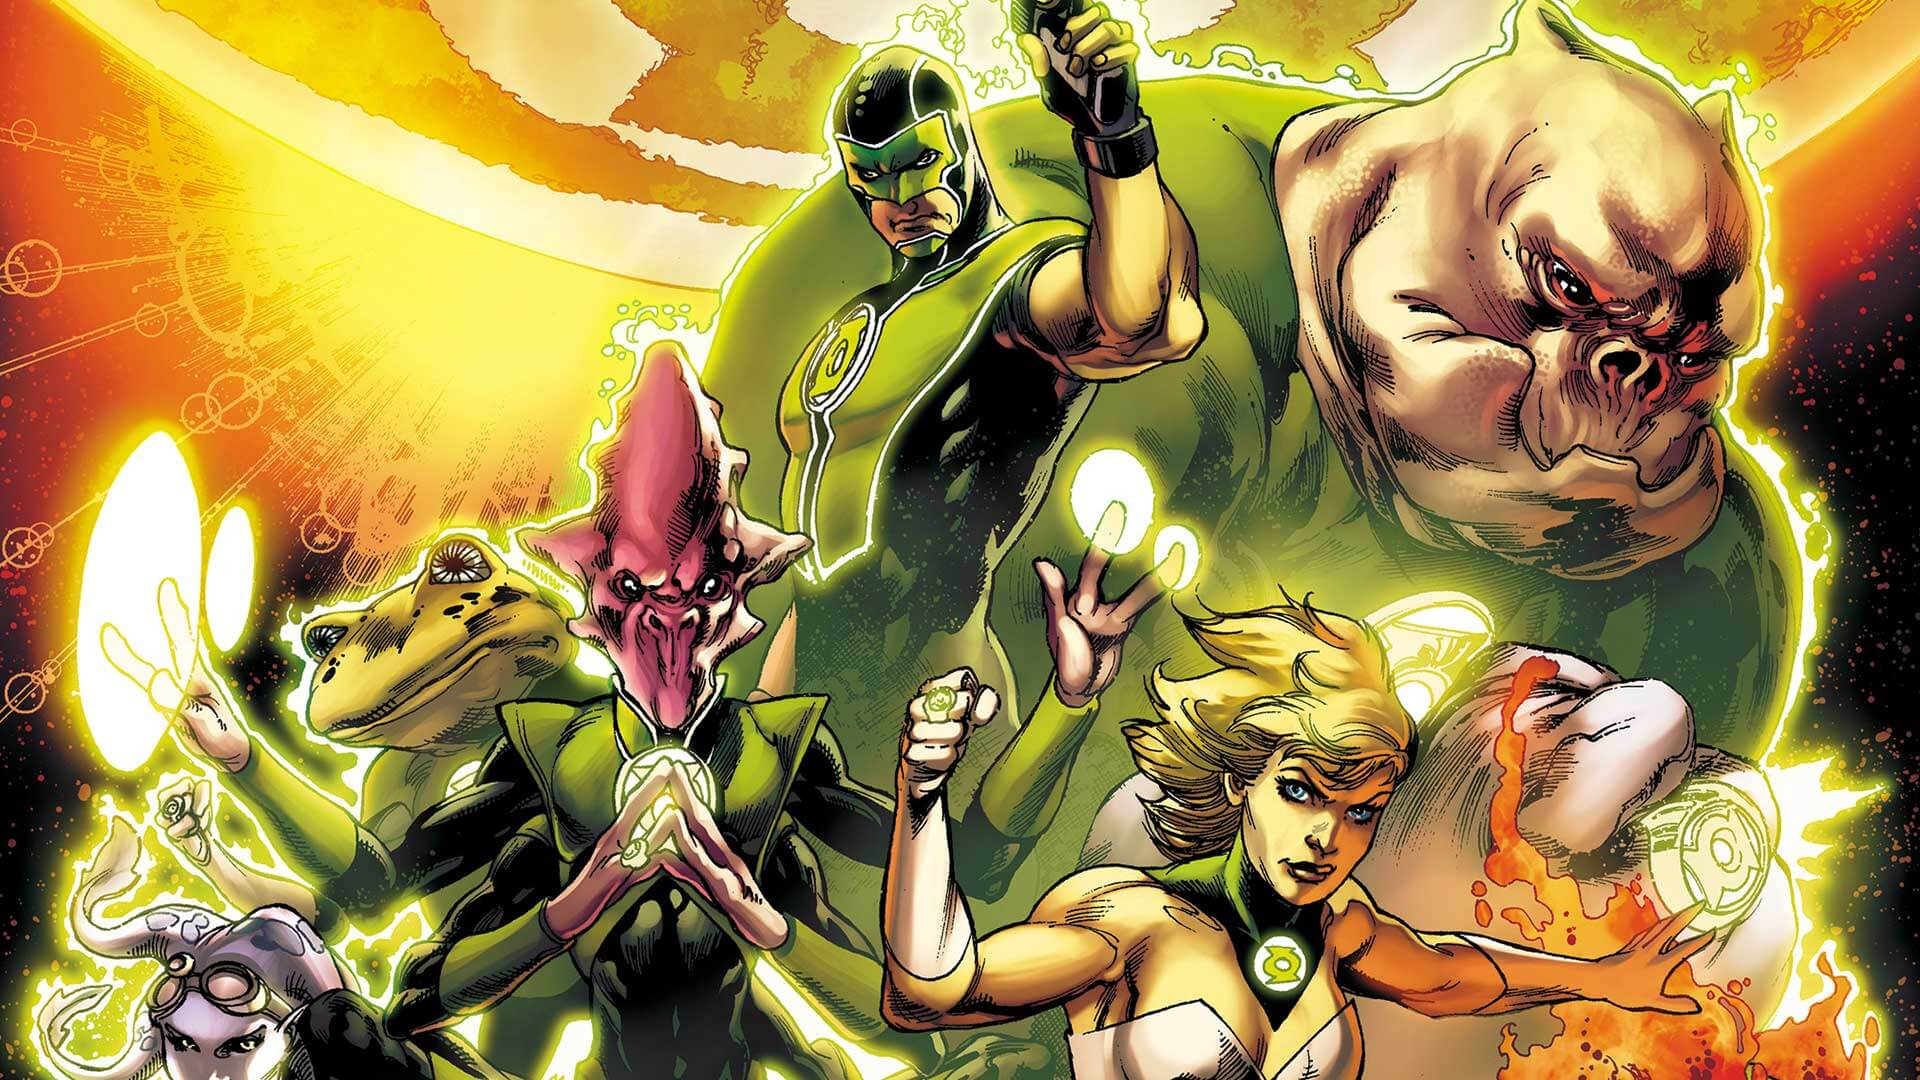 David S. Goyer Possibly Directing Green Lantern Corps.